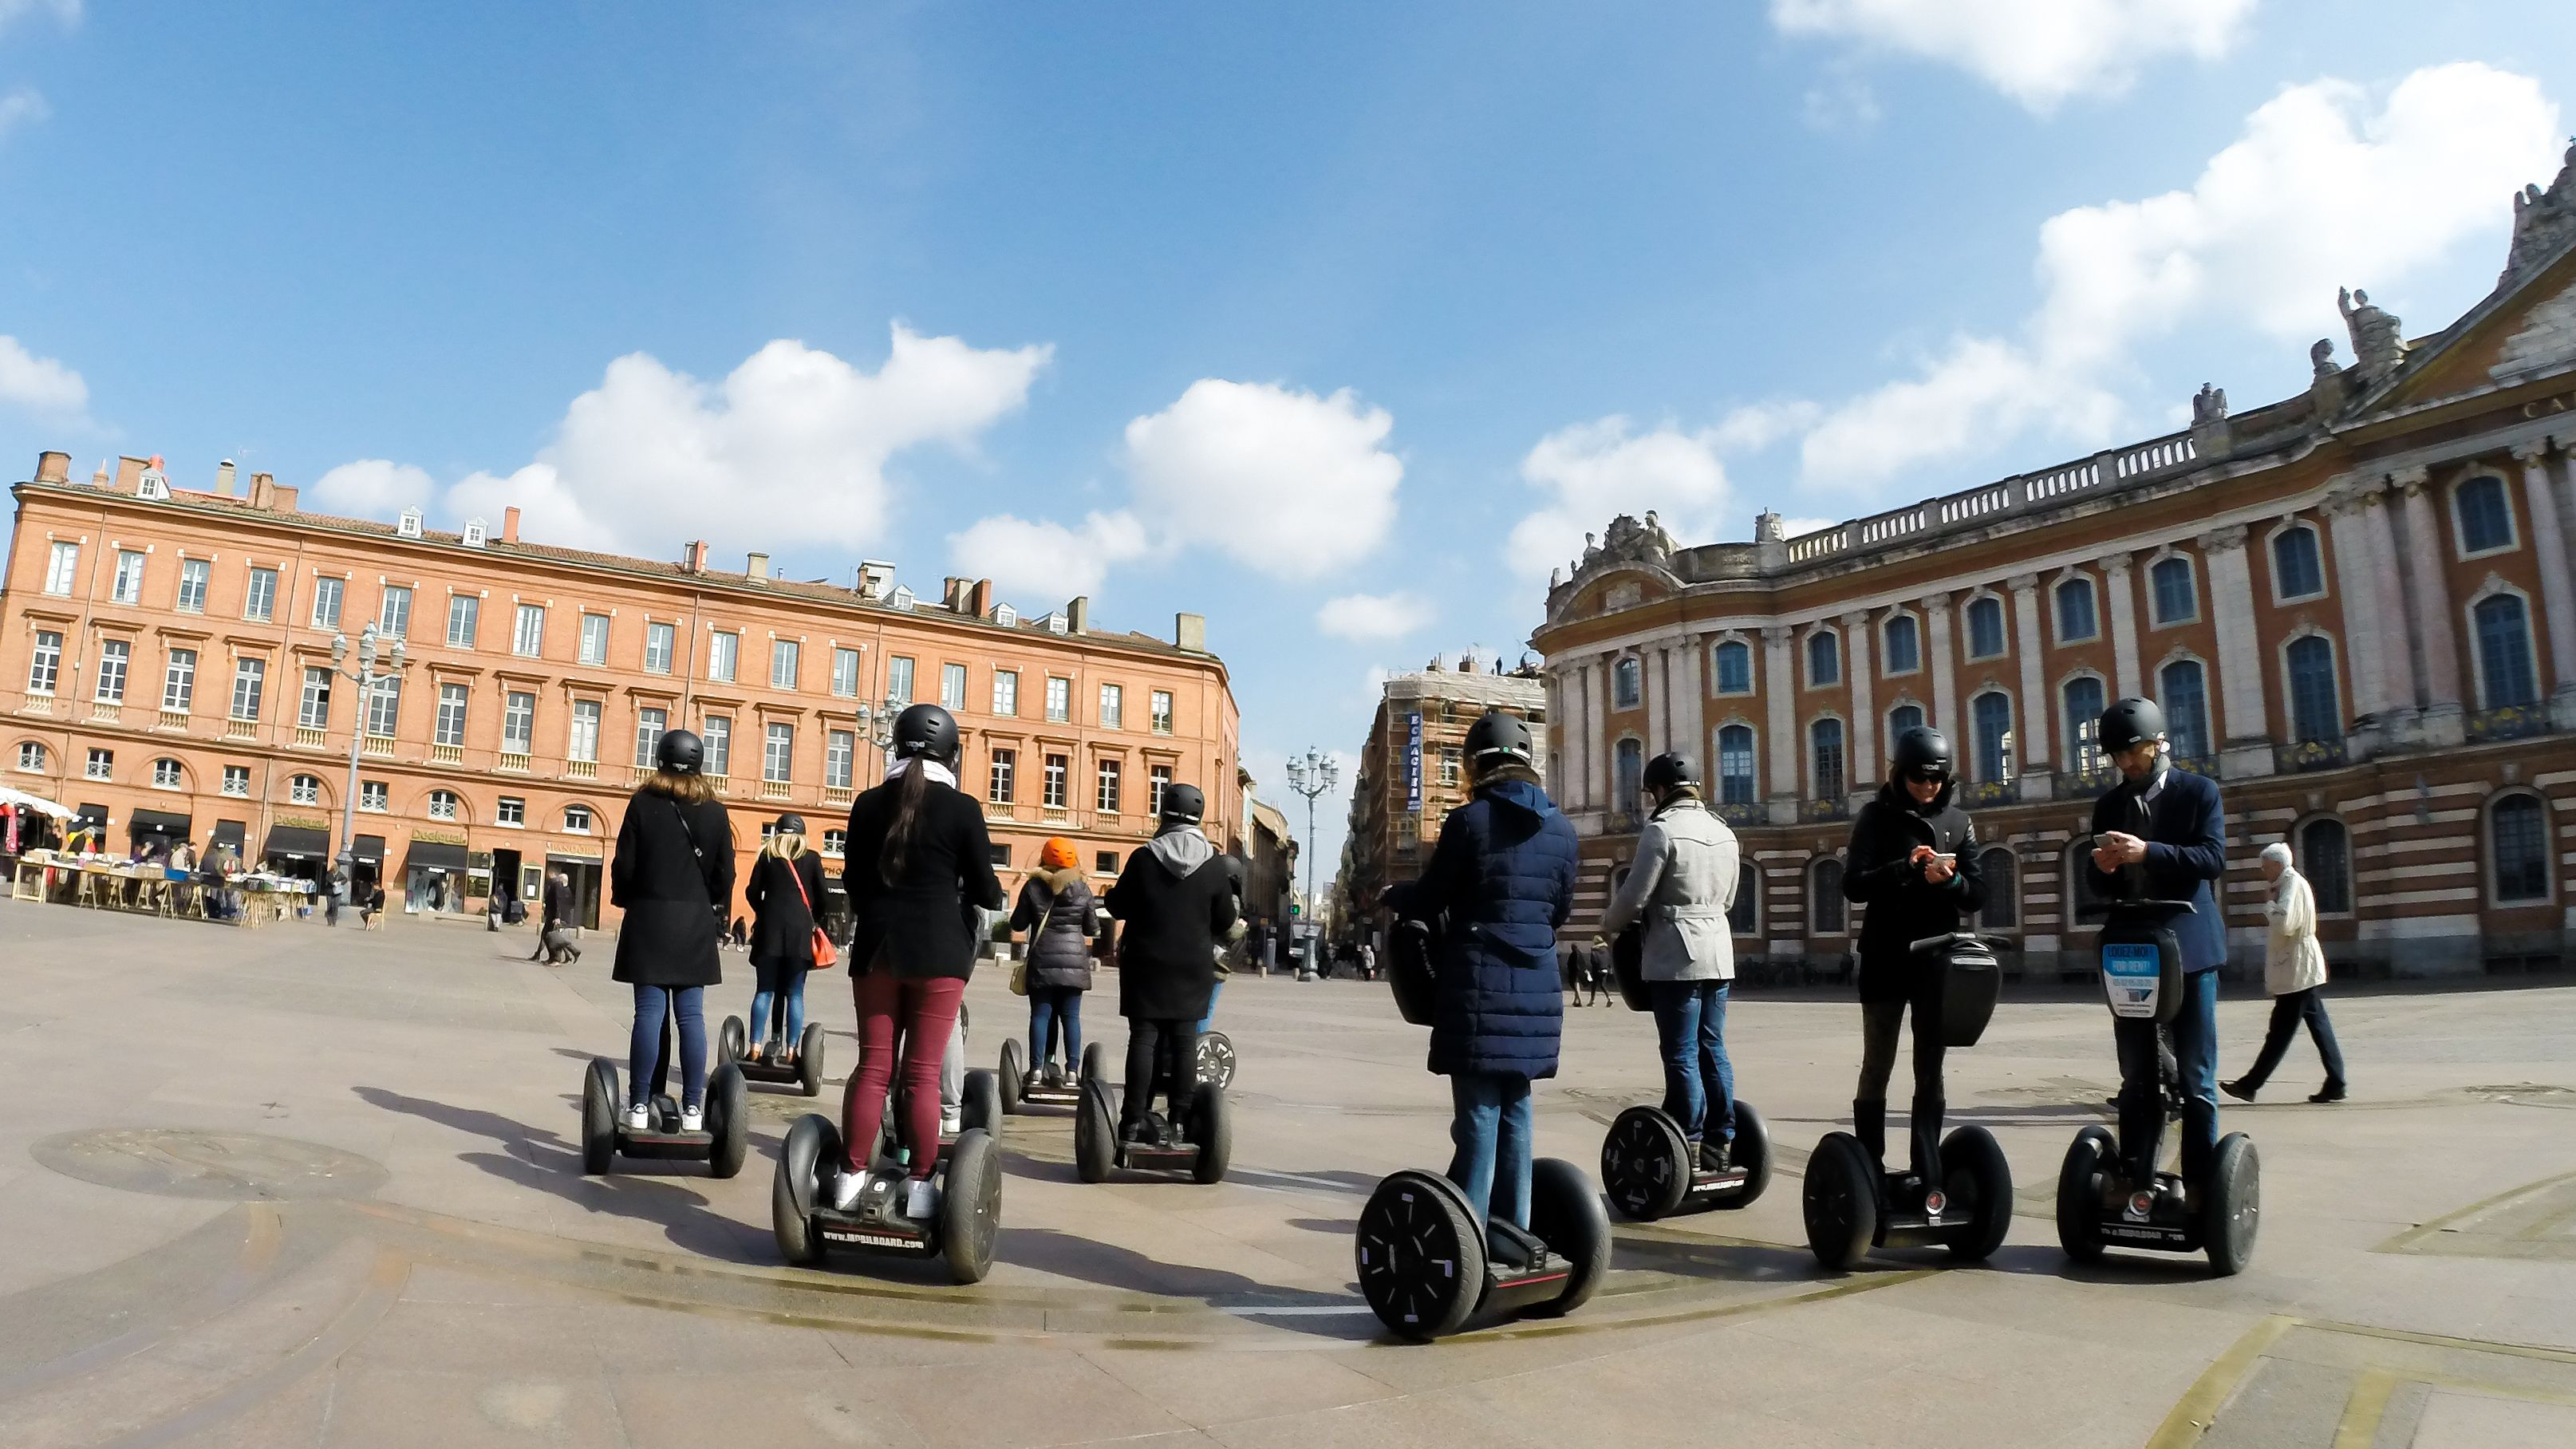 Segway tour group in town square of Toulouse